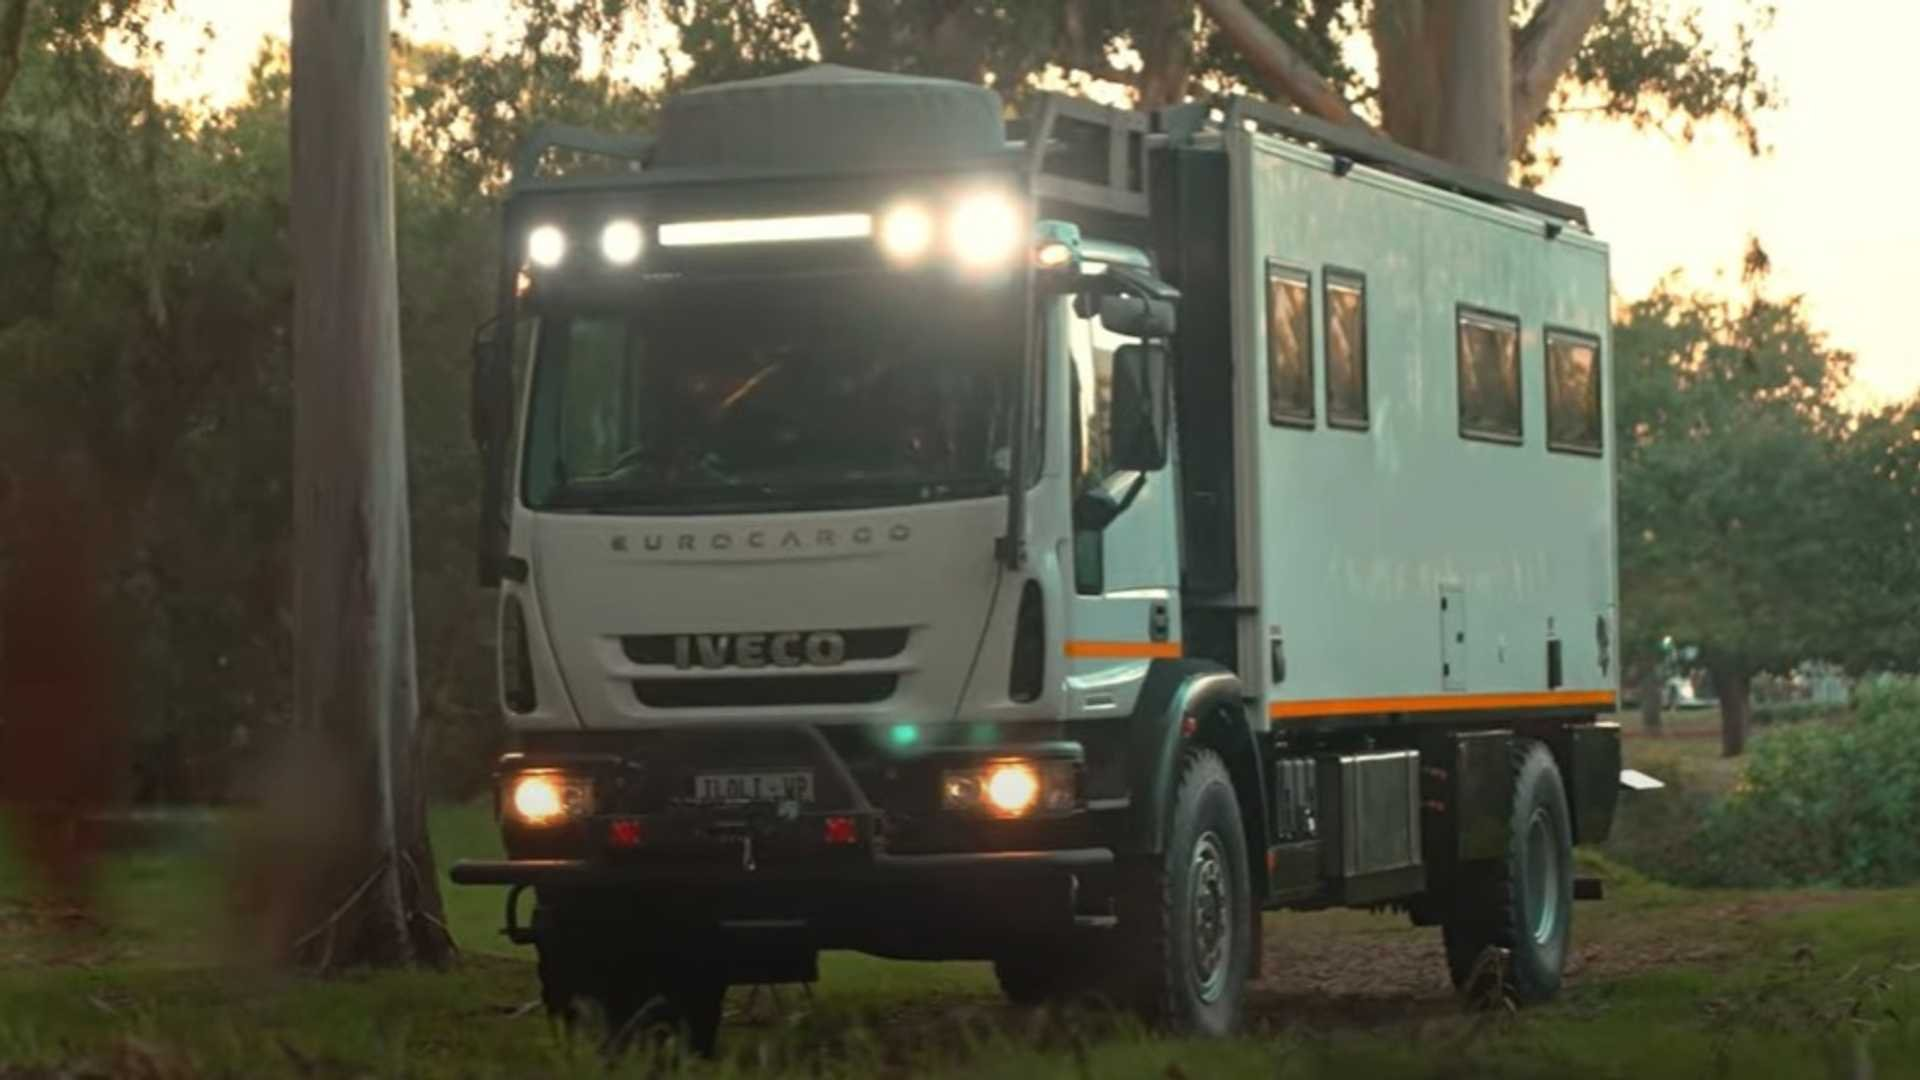 Iveco overlander vehicle has everything you need and it'll take you anywhere